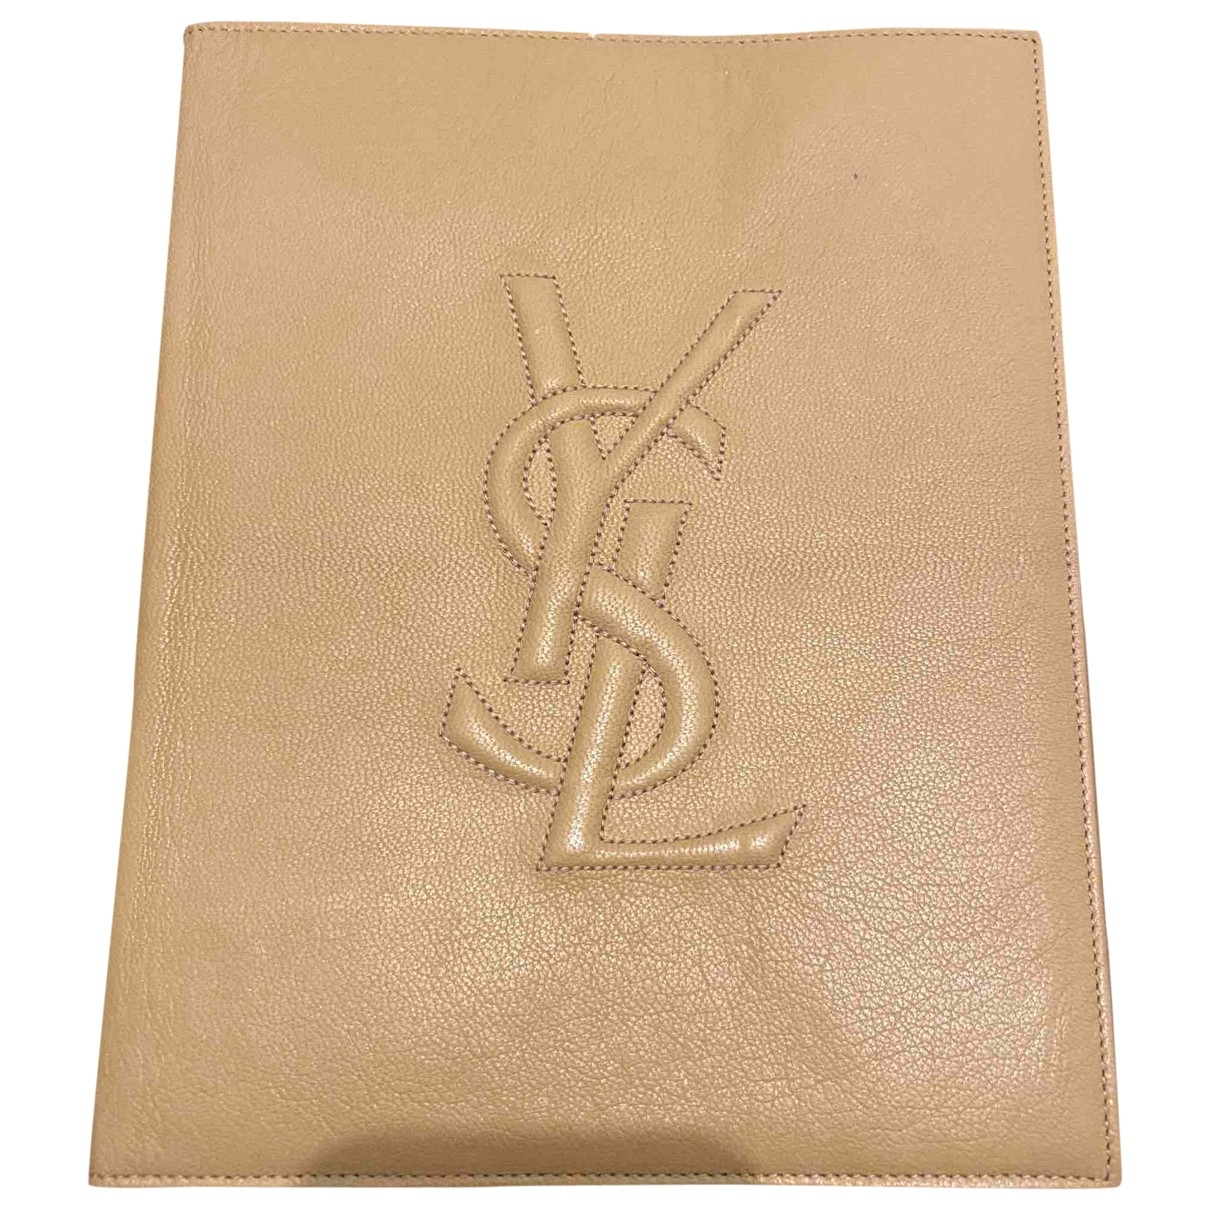 Yves Saint Laurent \N Beige Leather Accessories for Life & Living \N